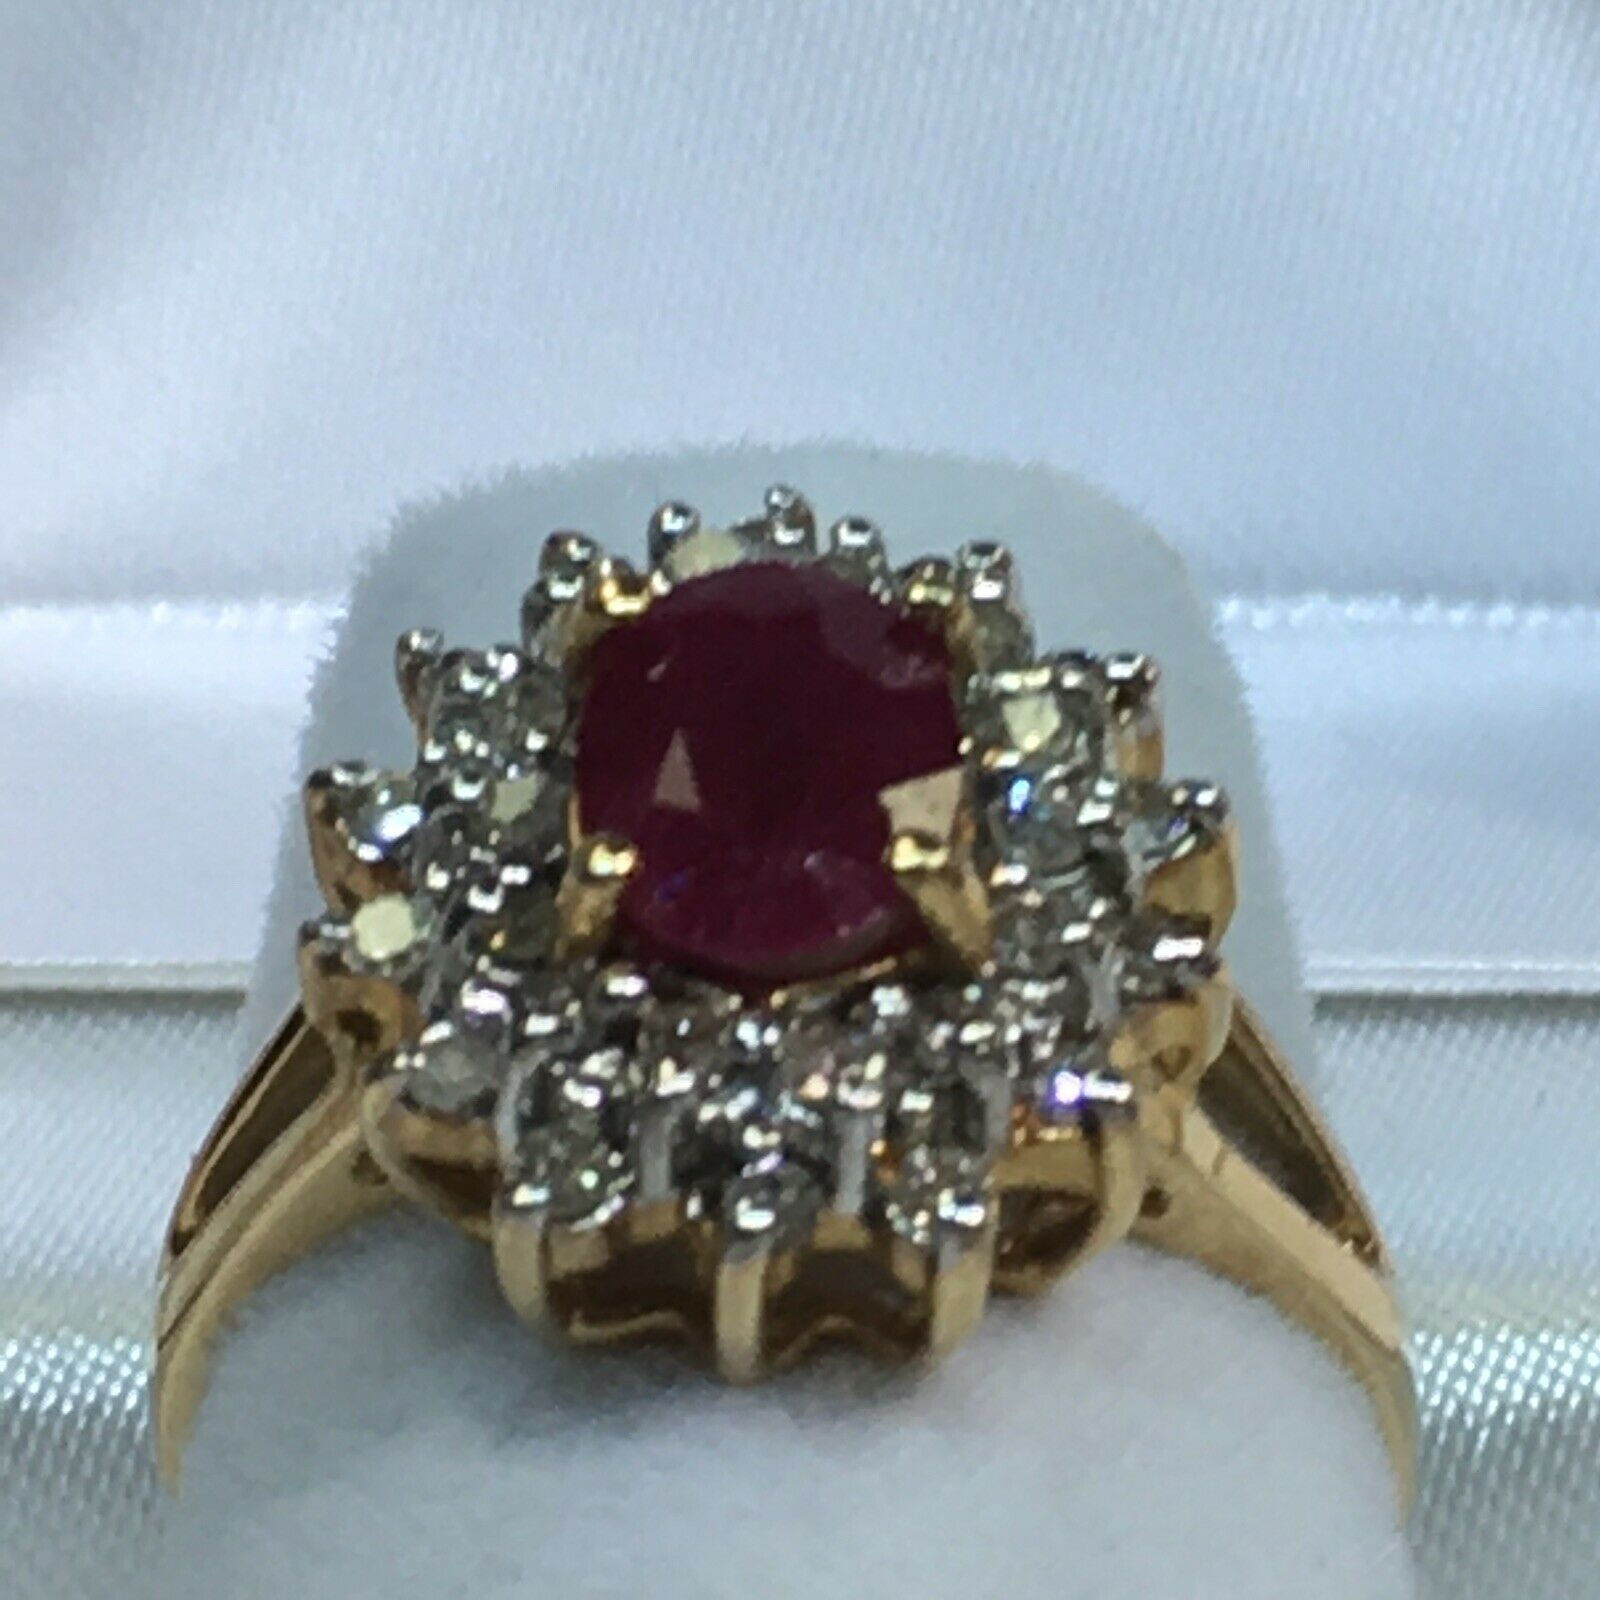 10k gold Ring With Oval Ruby And A Double Row Of Diamonds Around It